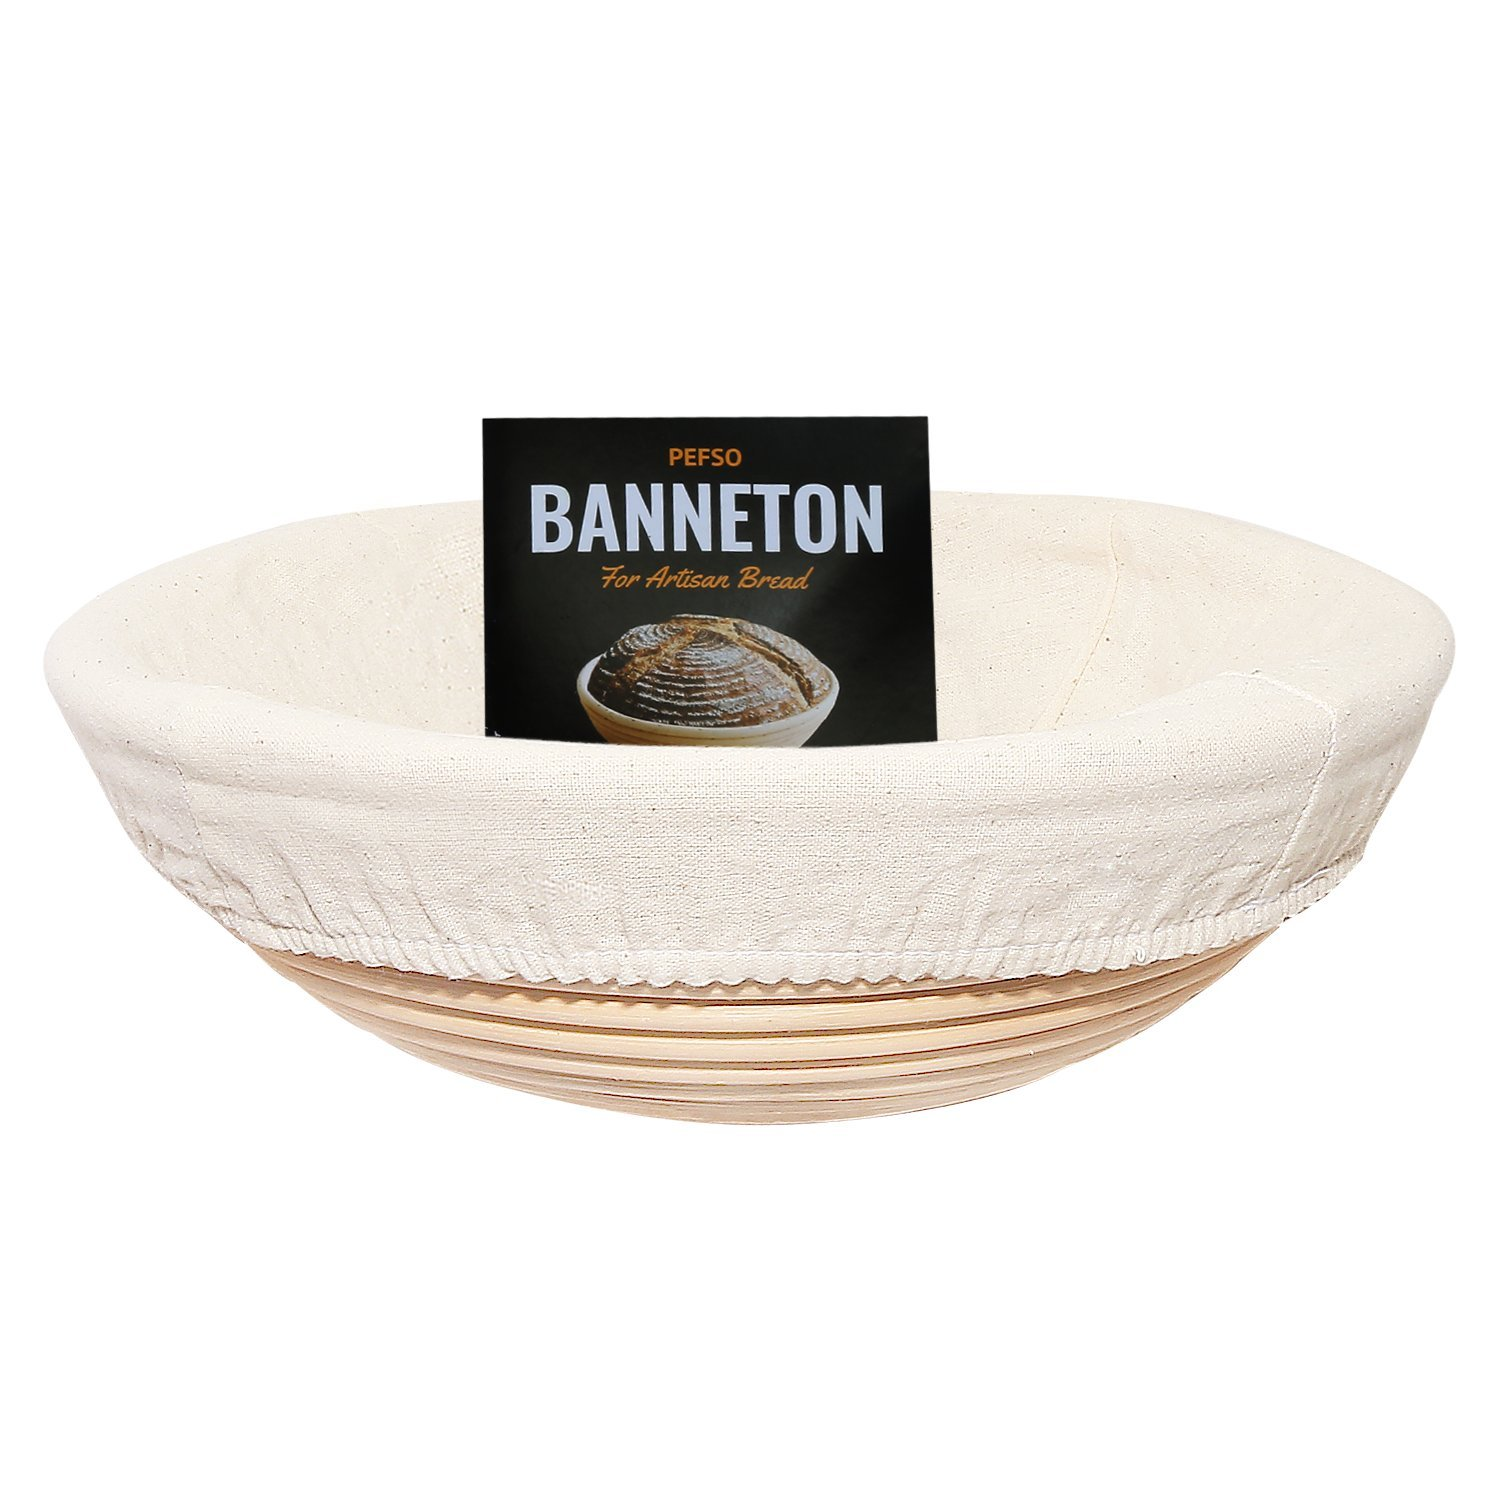 PEFSO 2pcs 9 Inch Round Banneton Rattan Bread Proofing Basket Brotform with Linen Liner clothfor Artisan Sourdough Bread